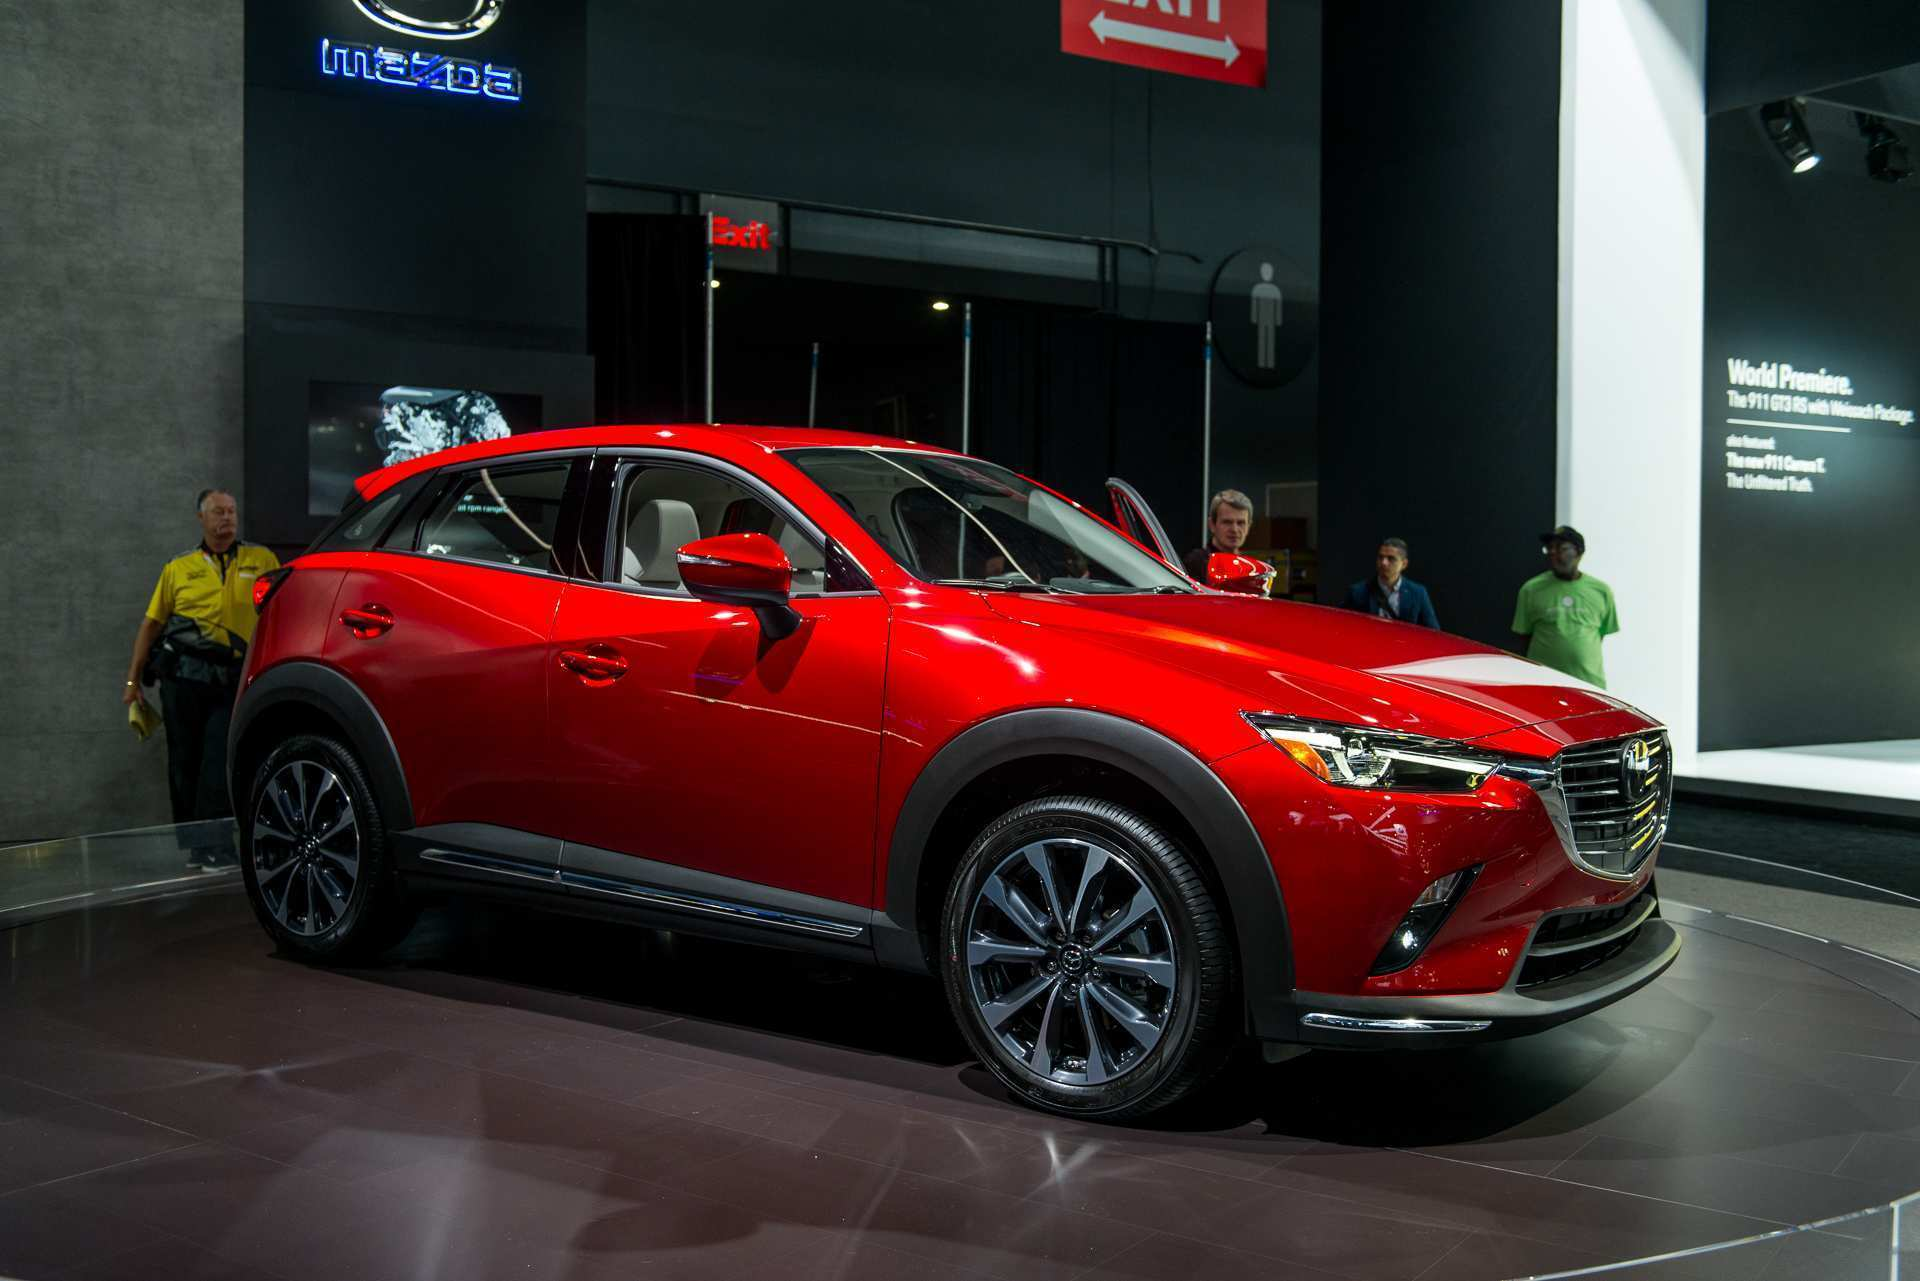 67 Gallery of 2020 Mazda CX 3 Spesification with 2020 Mazda CX 3